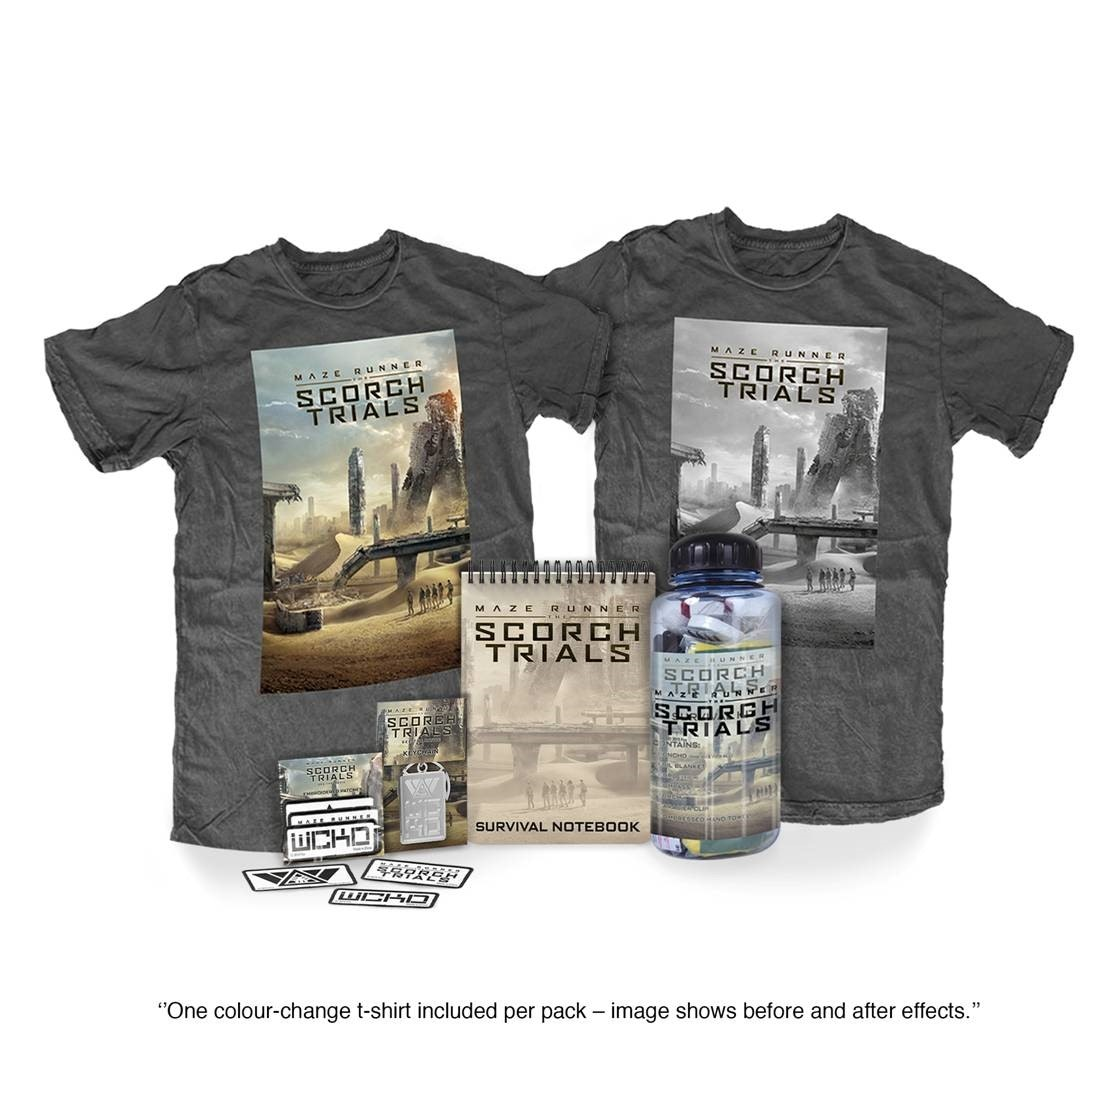 Win merchandise from Maze Runner: The Scorch Trials sweepstakes